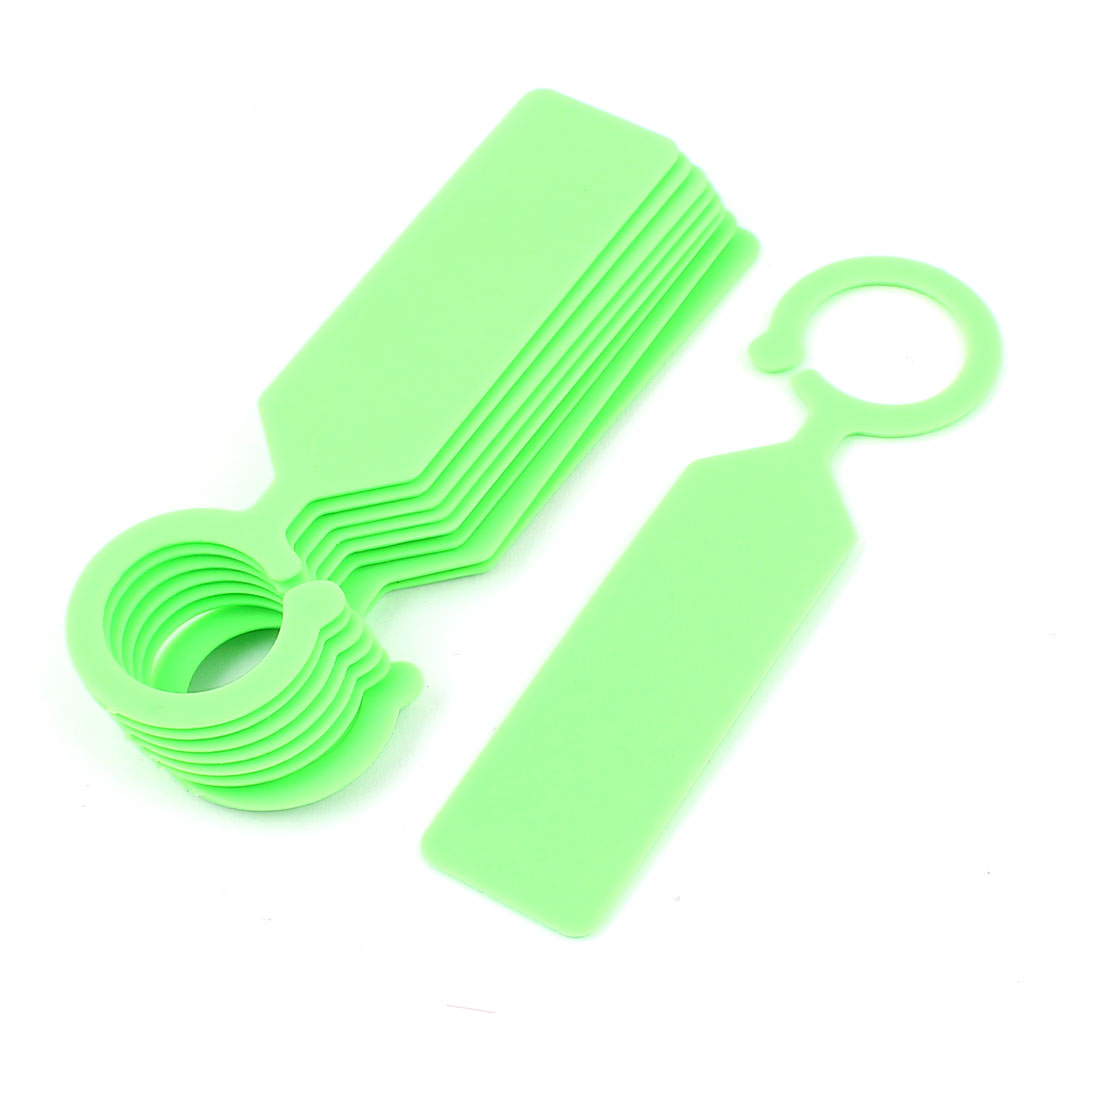 Plastic Hook Nursery Garden Plant Seed Hanging Tag Label Marker Green 10Pcs